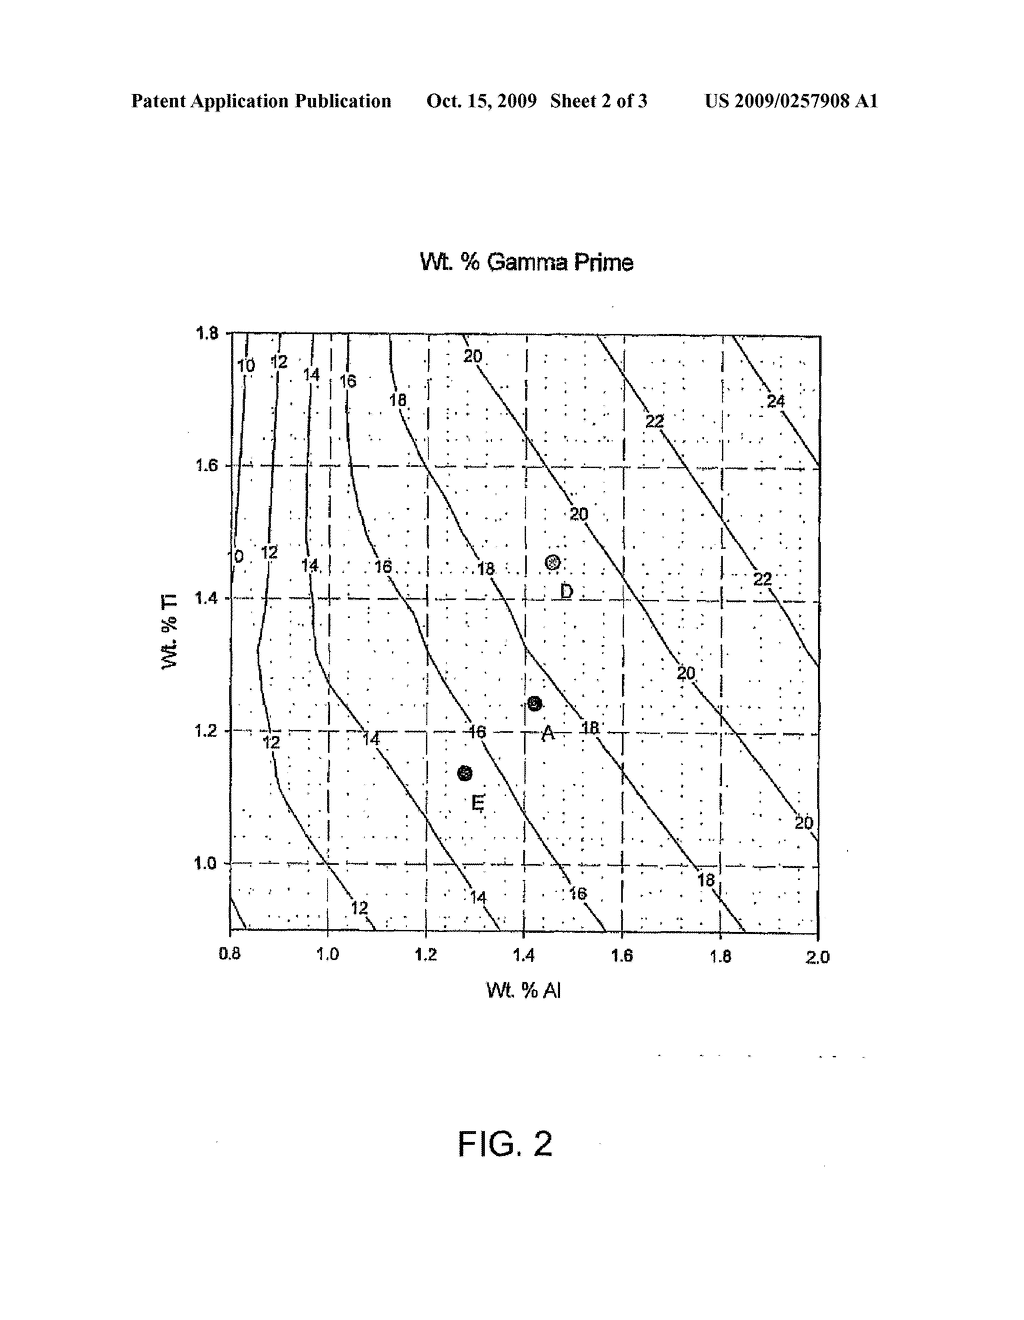 Gamma Close In Boiler Ultra Supercritical Boiler Header Alloy And Method Of Preparation